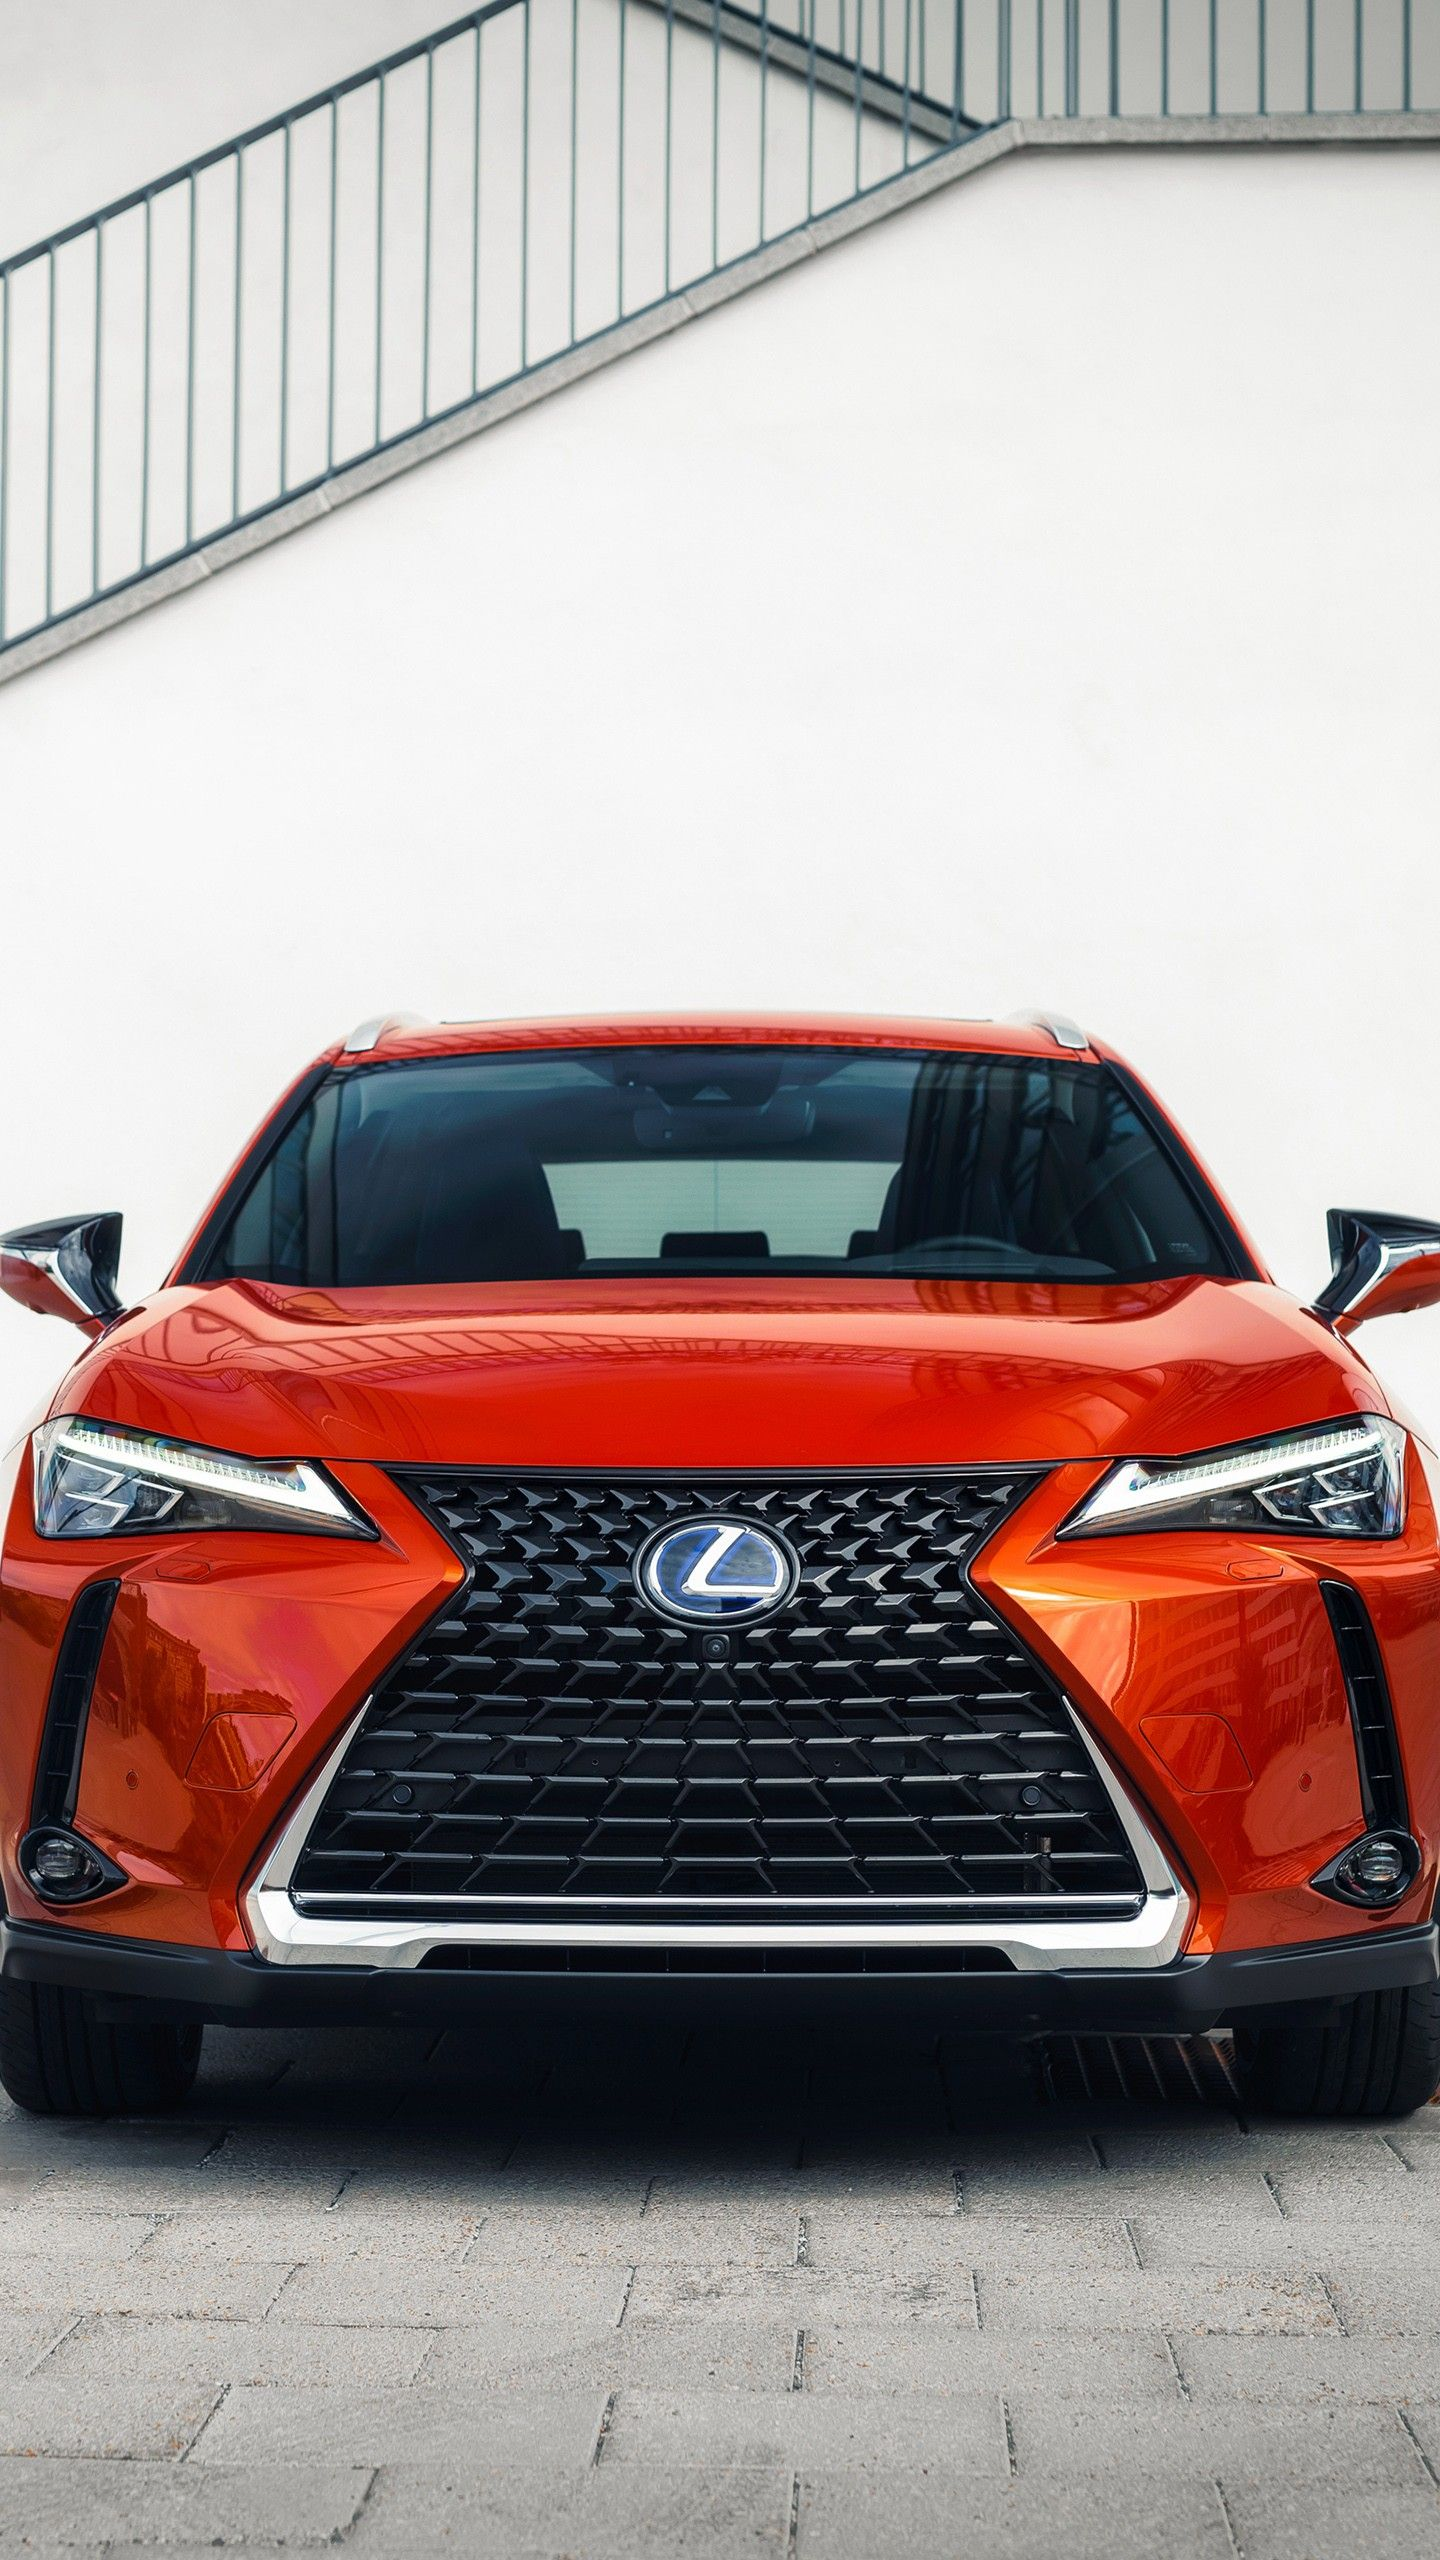 Cars 2019 Lexus Ux 250h 4k Wallpapers Hd 4k Background For Android Lexus Ux Lexus Chr Toyota